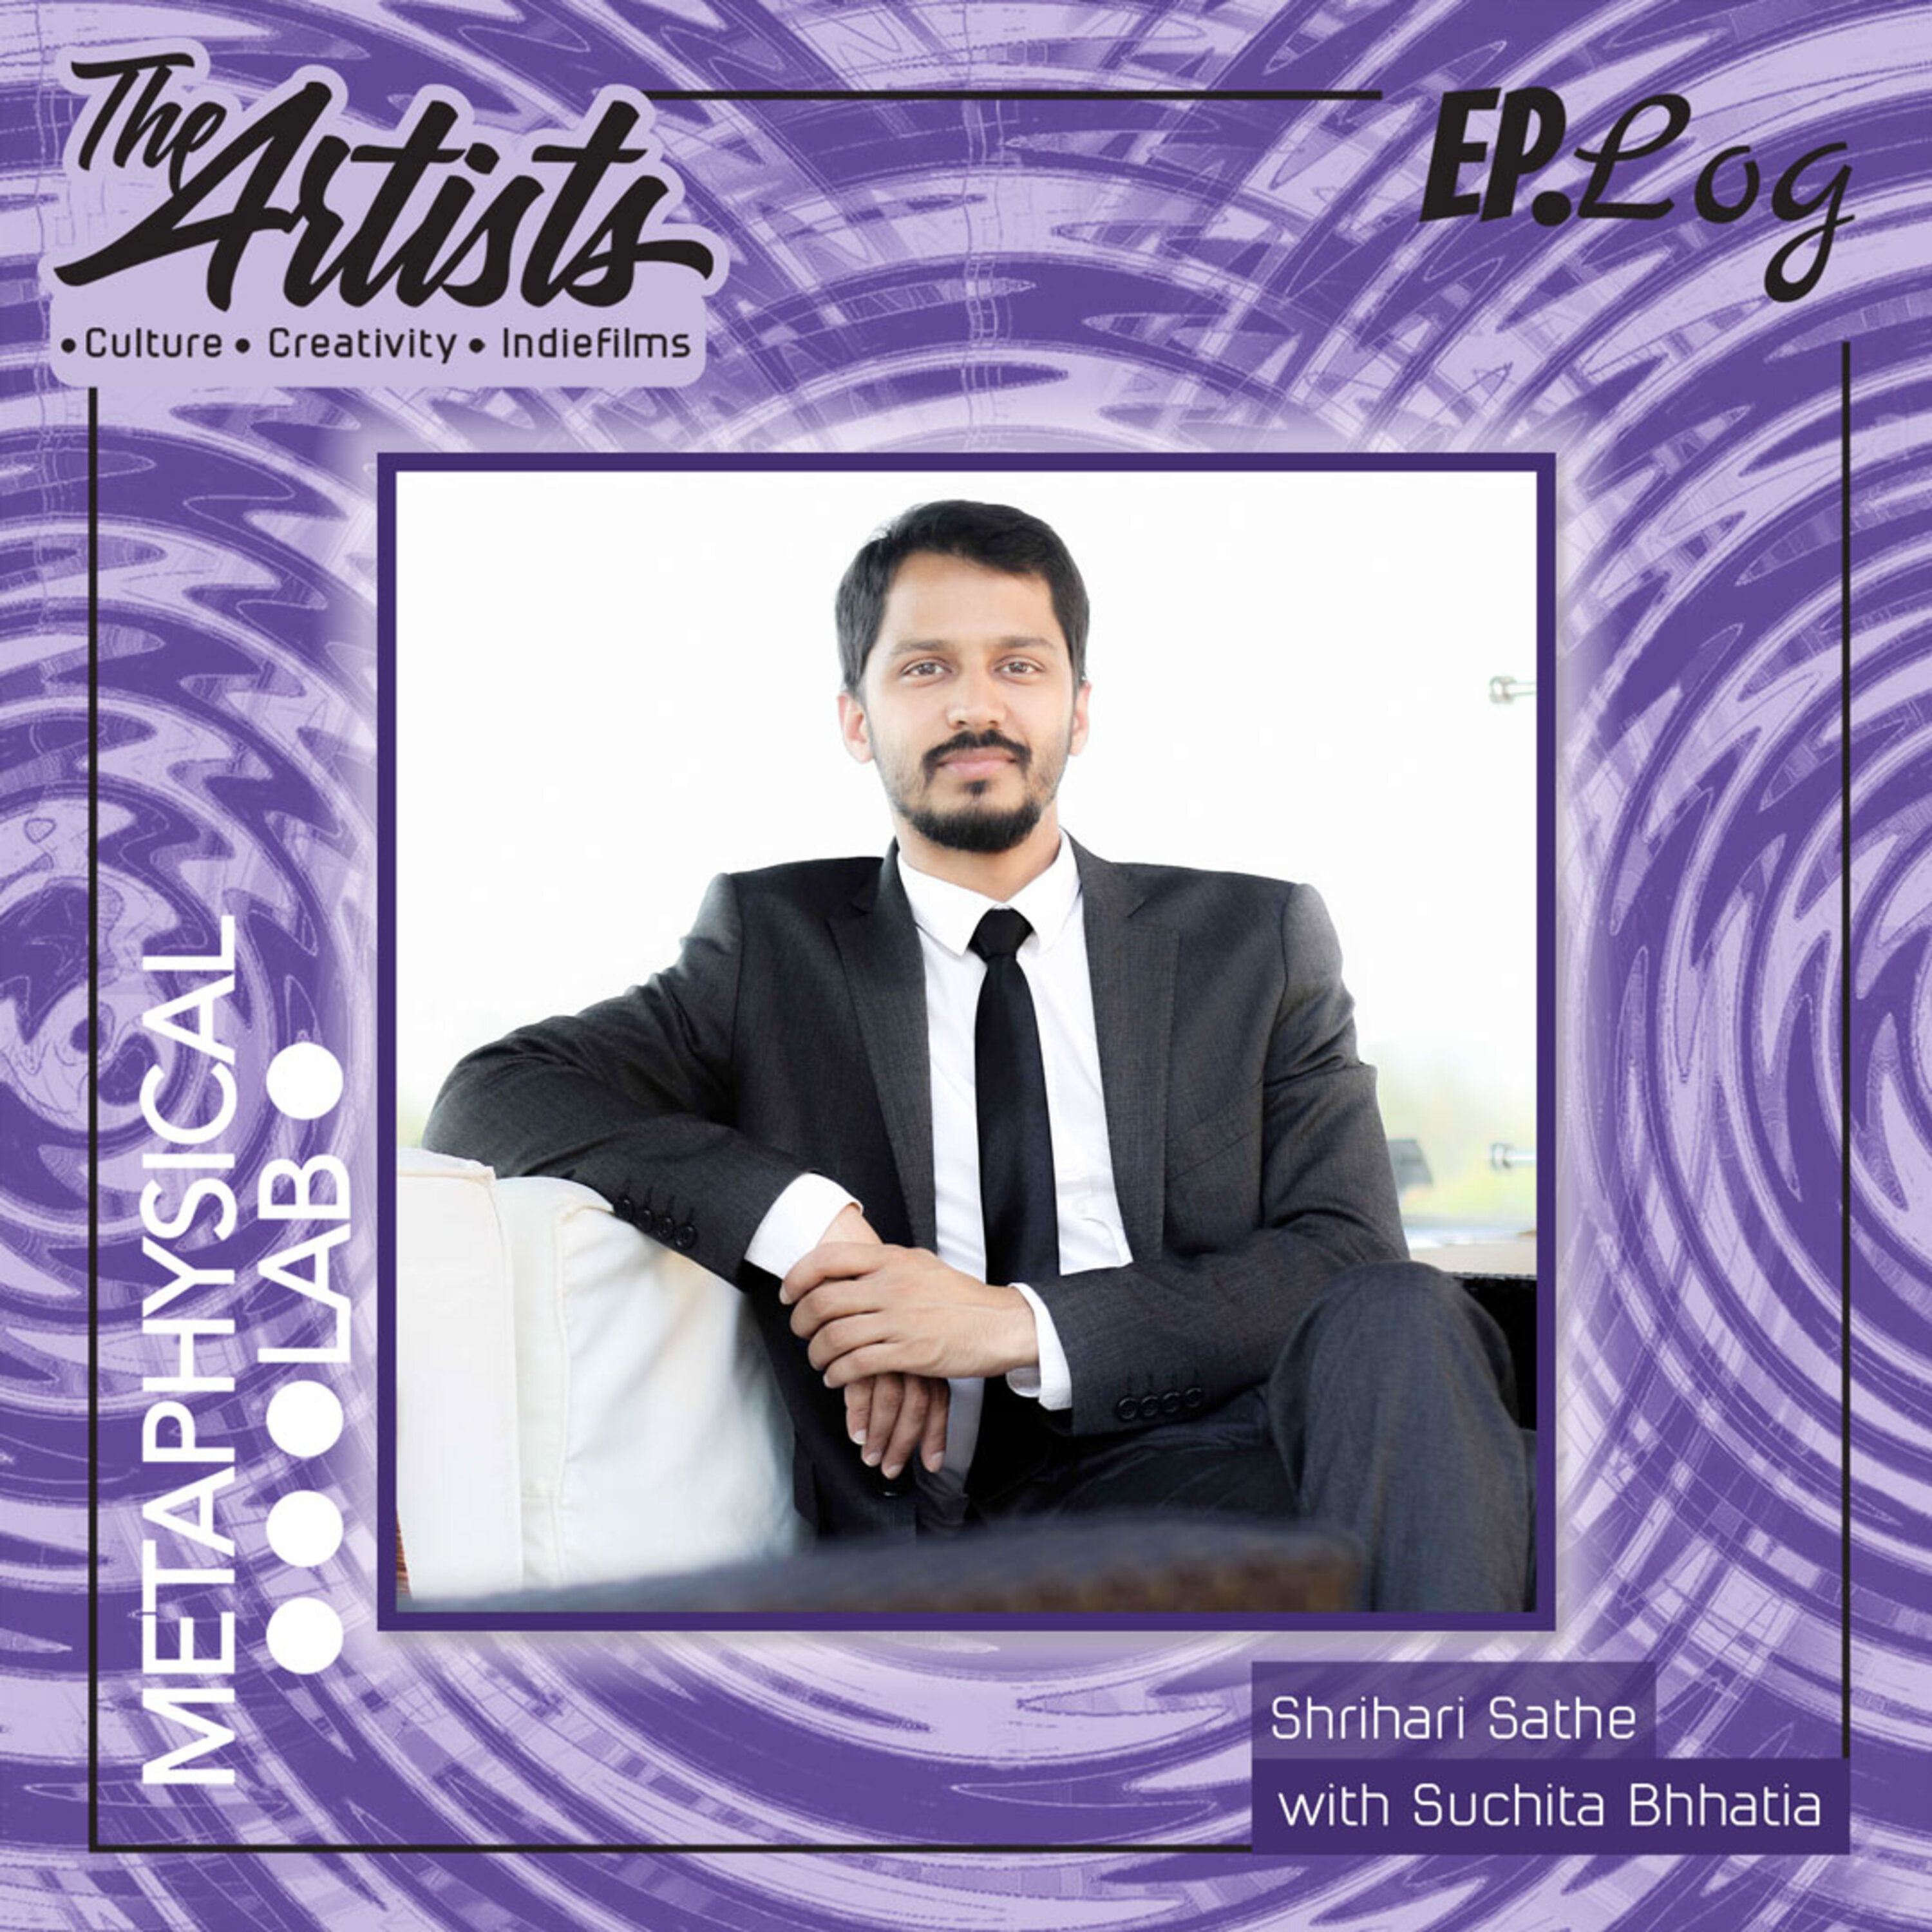 EP 51 PRODUCING, BUDGETING, MARKETING & RECOVERY OF YOUR INDIE FILM FEAT: SHRIHARI SATHE